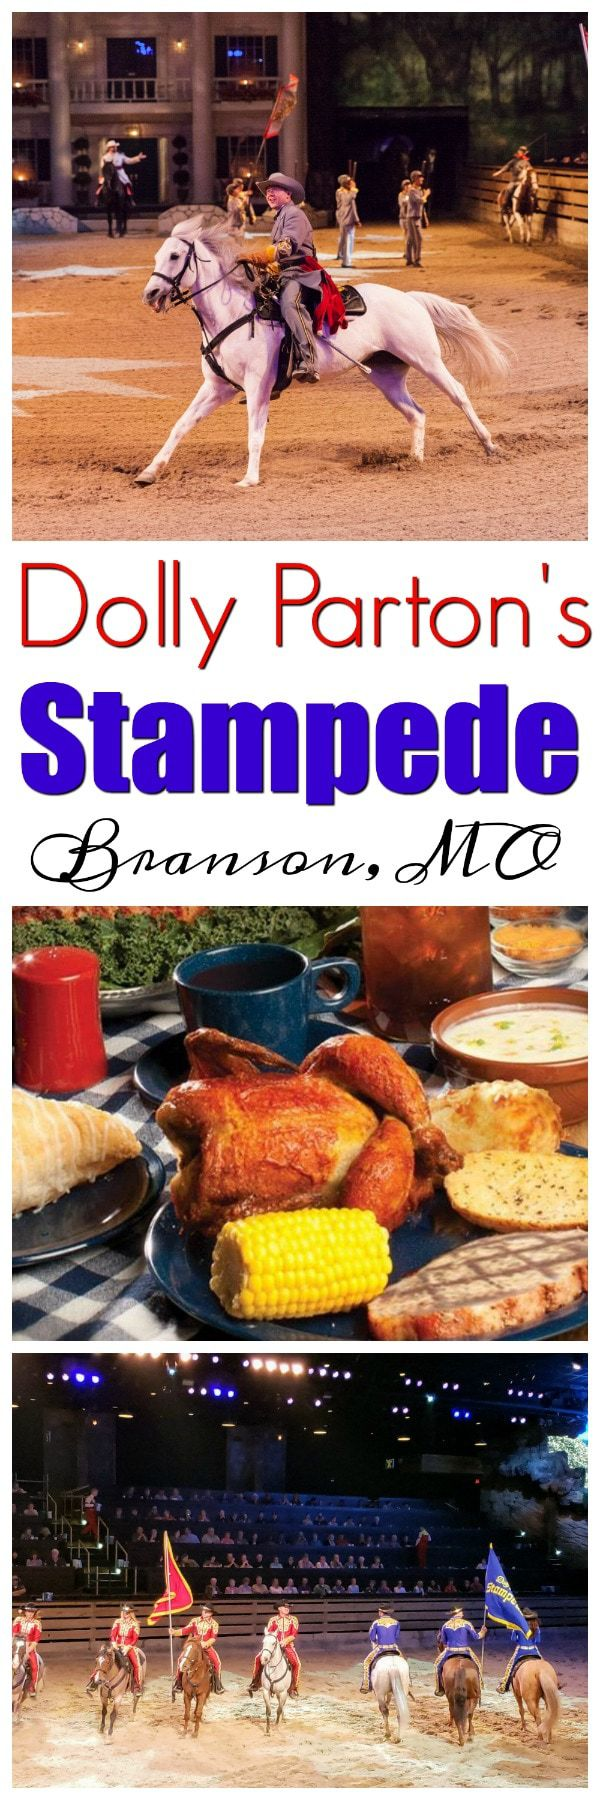 Dolly Parton's Stampede in Branson, MO: If you are planning a trip to Branson, and are looking for great entertainment and delicious southern food combined, then give the Dolly Parton's Stampede some serious consideration. This show will be a high-light of your Branson vacation. The Dolly Parton's Stampede is a dinner theater like no other.